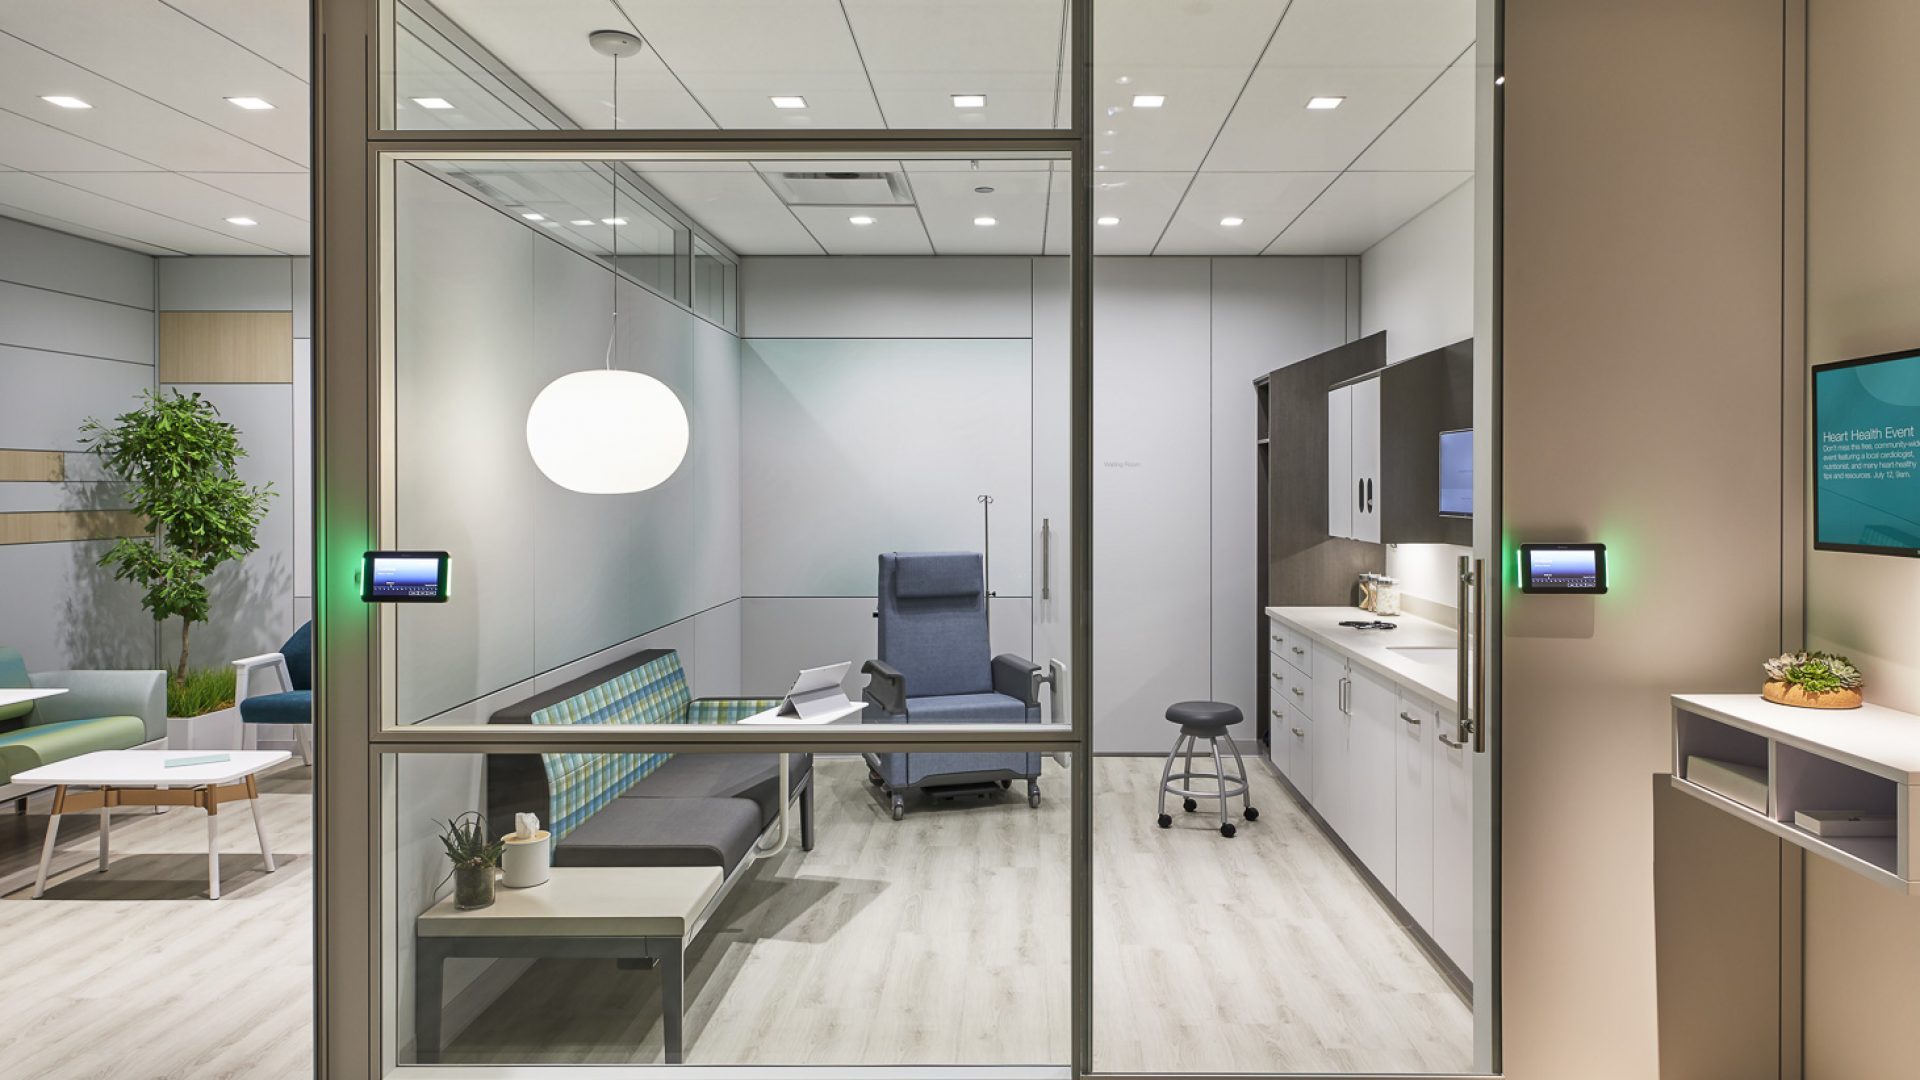 Custer's specialized healthcare team is trained to meet the unique needs of our diverse healthcare customers. From private practices to expansive health systems, Custer designs and builds exceptional healing spaces.